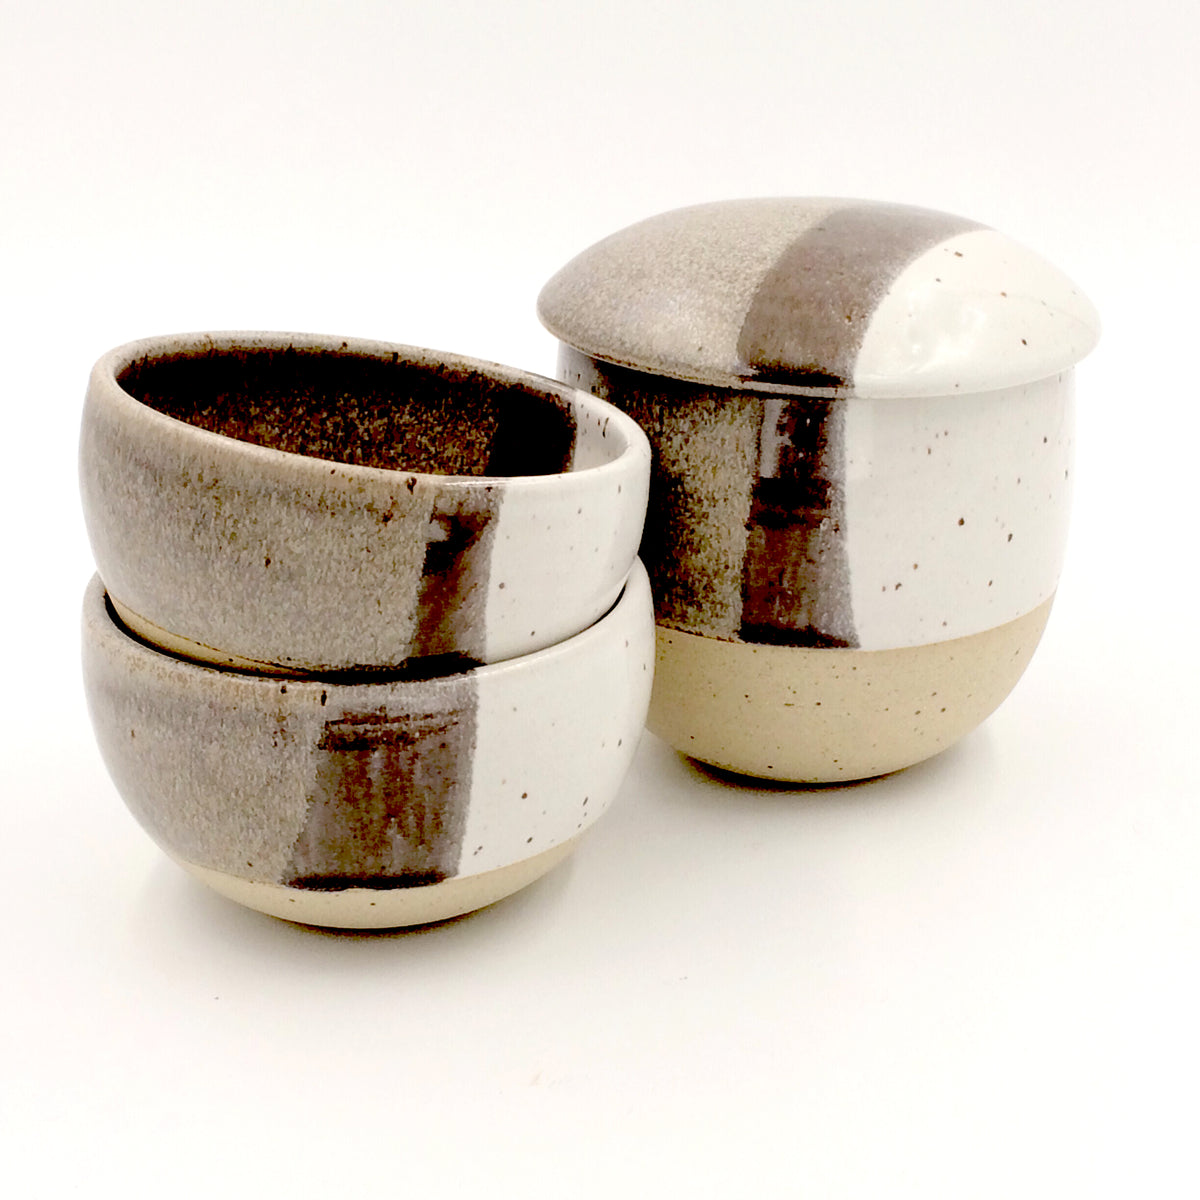 Bowls and Tea Box